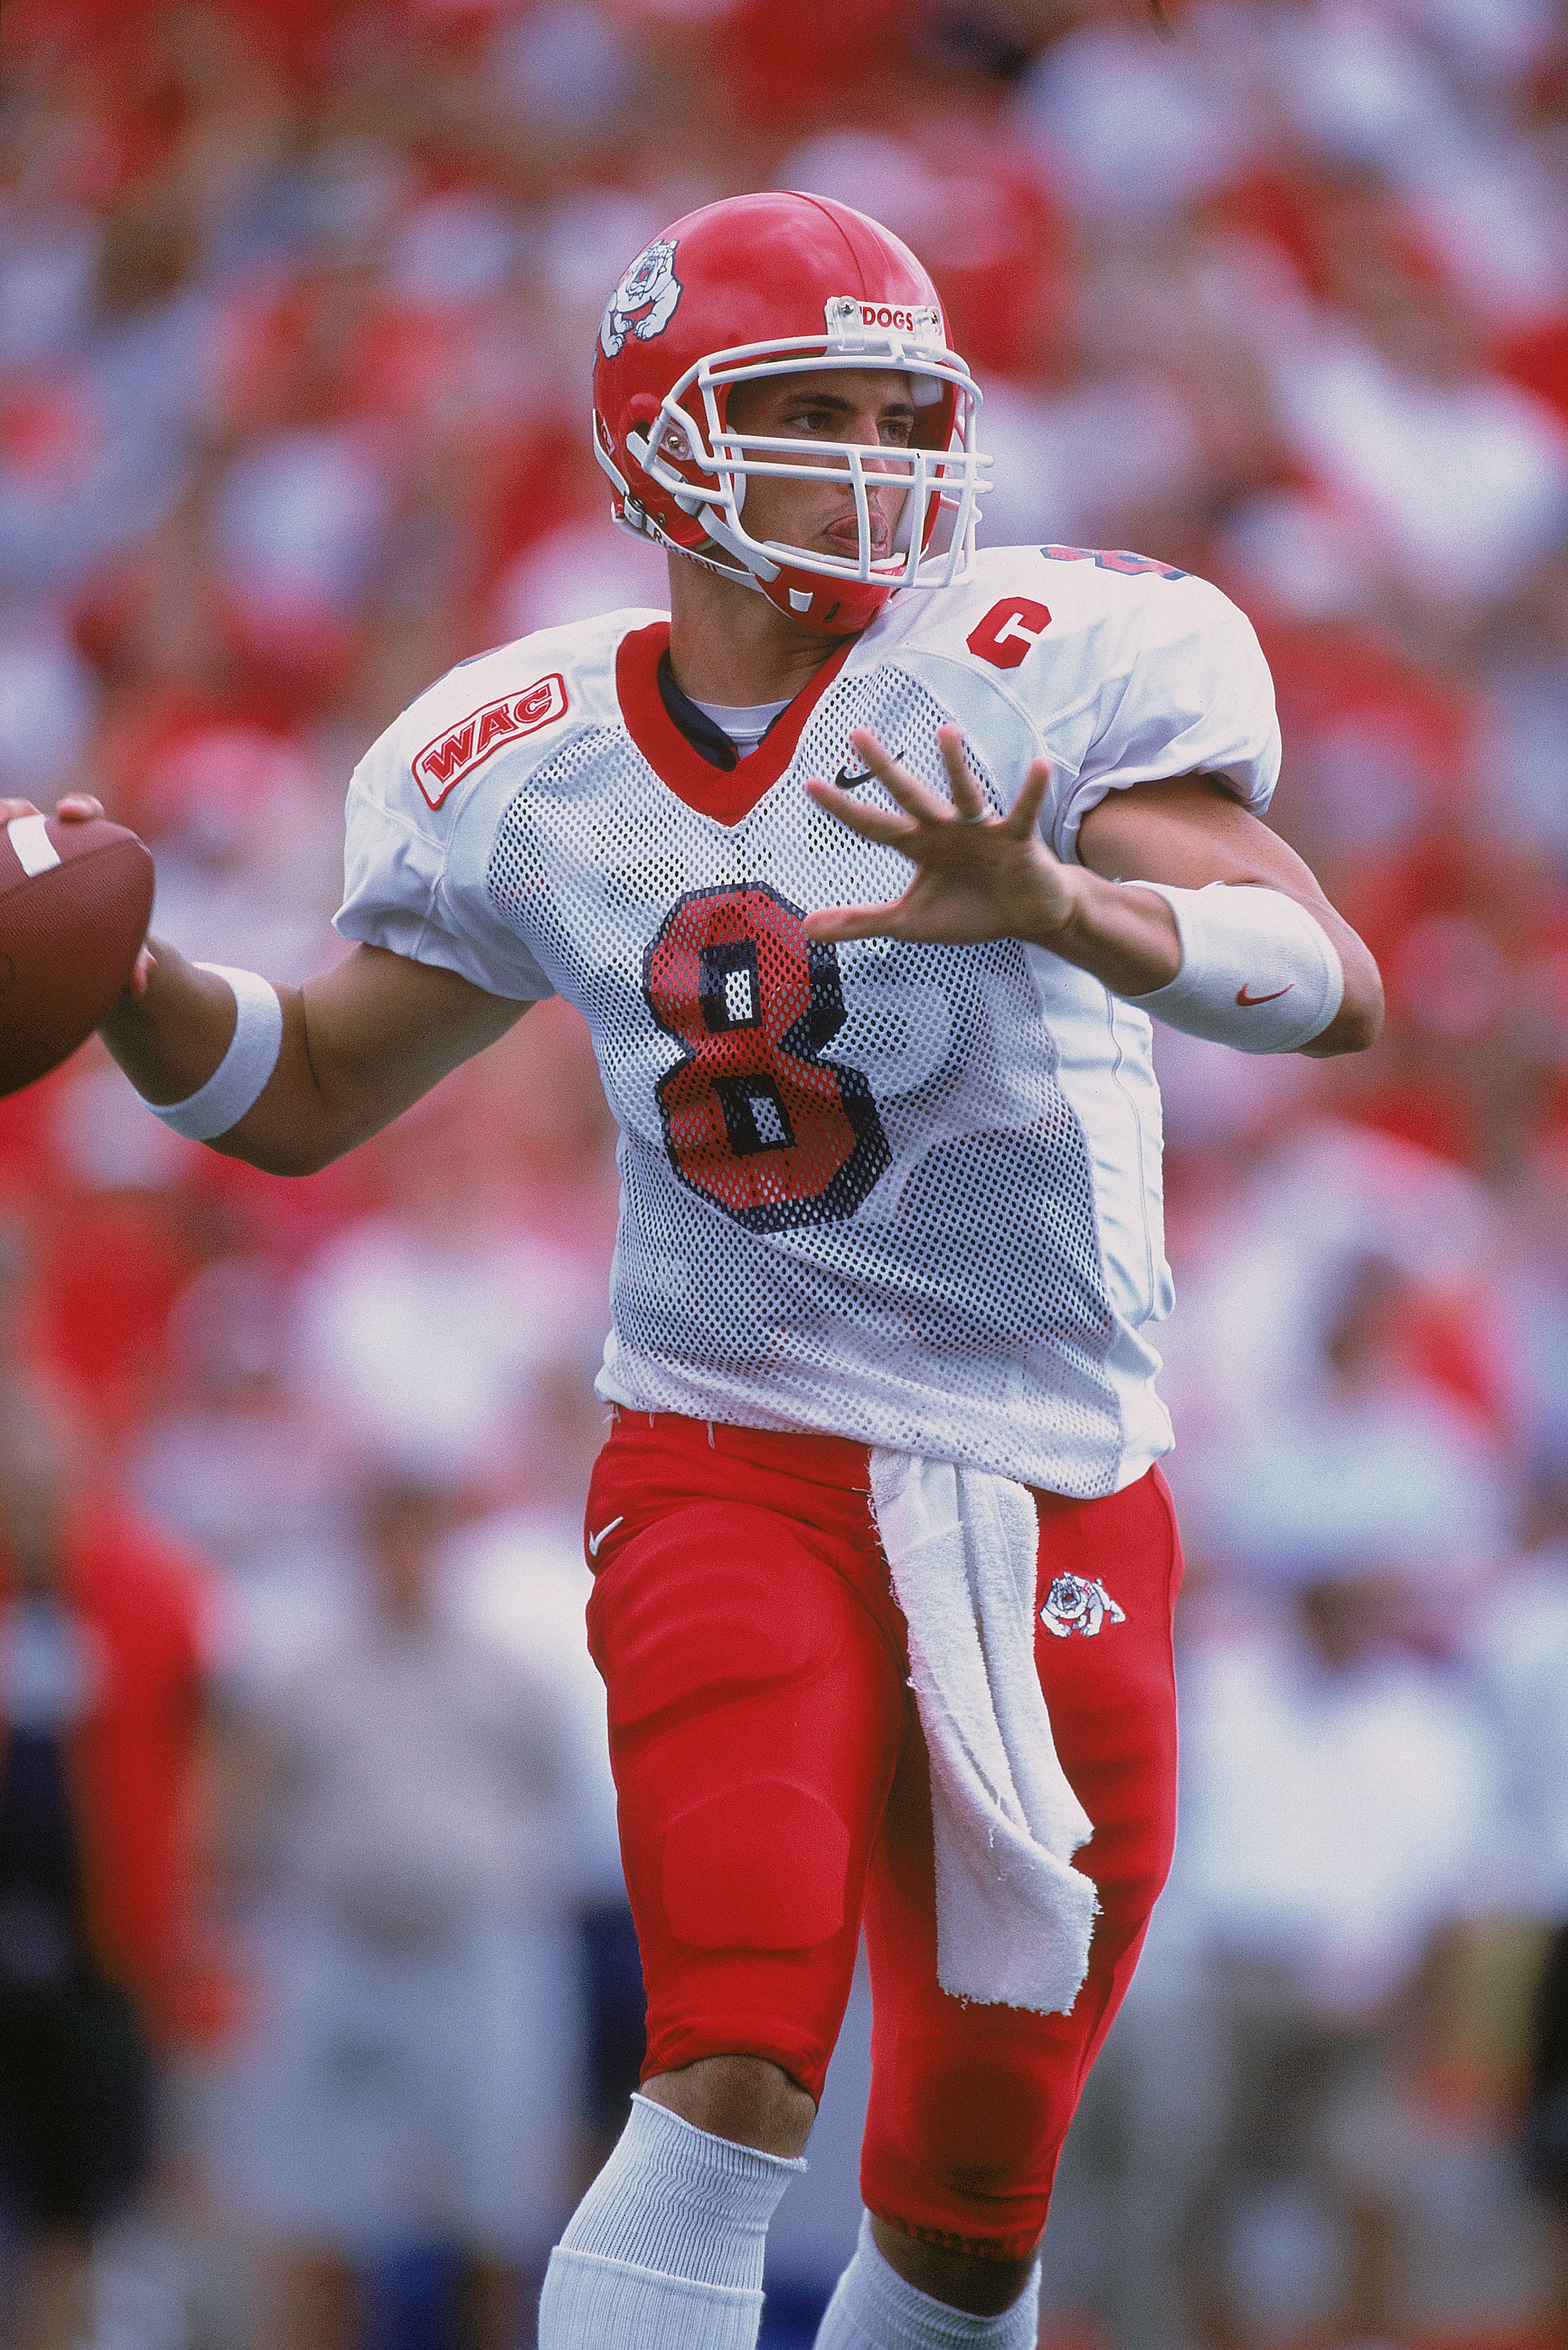 8 Sep 2001:  Quarterback David Carr #8 of the Fresno State Bull Dogs gets ready to pass the ball during the game against the Wisconsin Badgers at Camp Randall Stadium in Madison, Wisconsin. The Bull Dogs defeated the Badgers 32-20.Mandatory Credit: Jonath